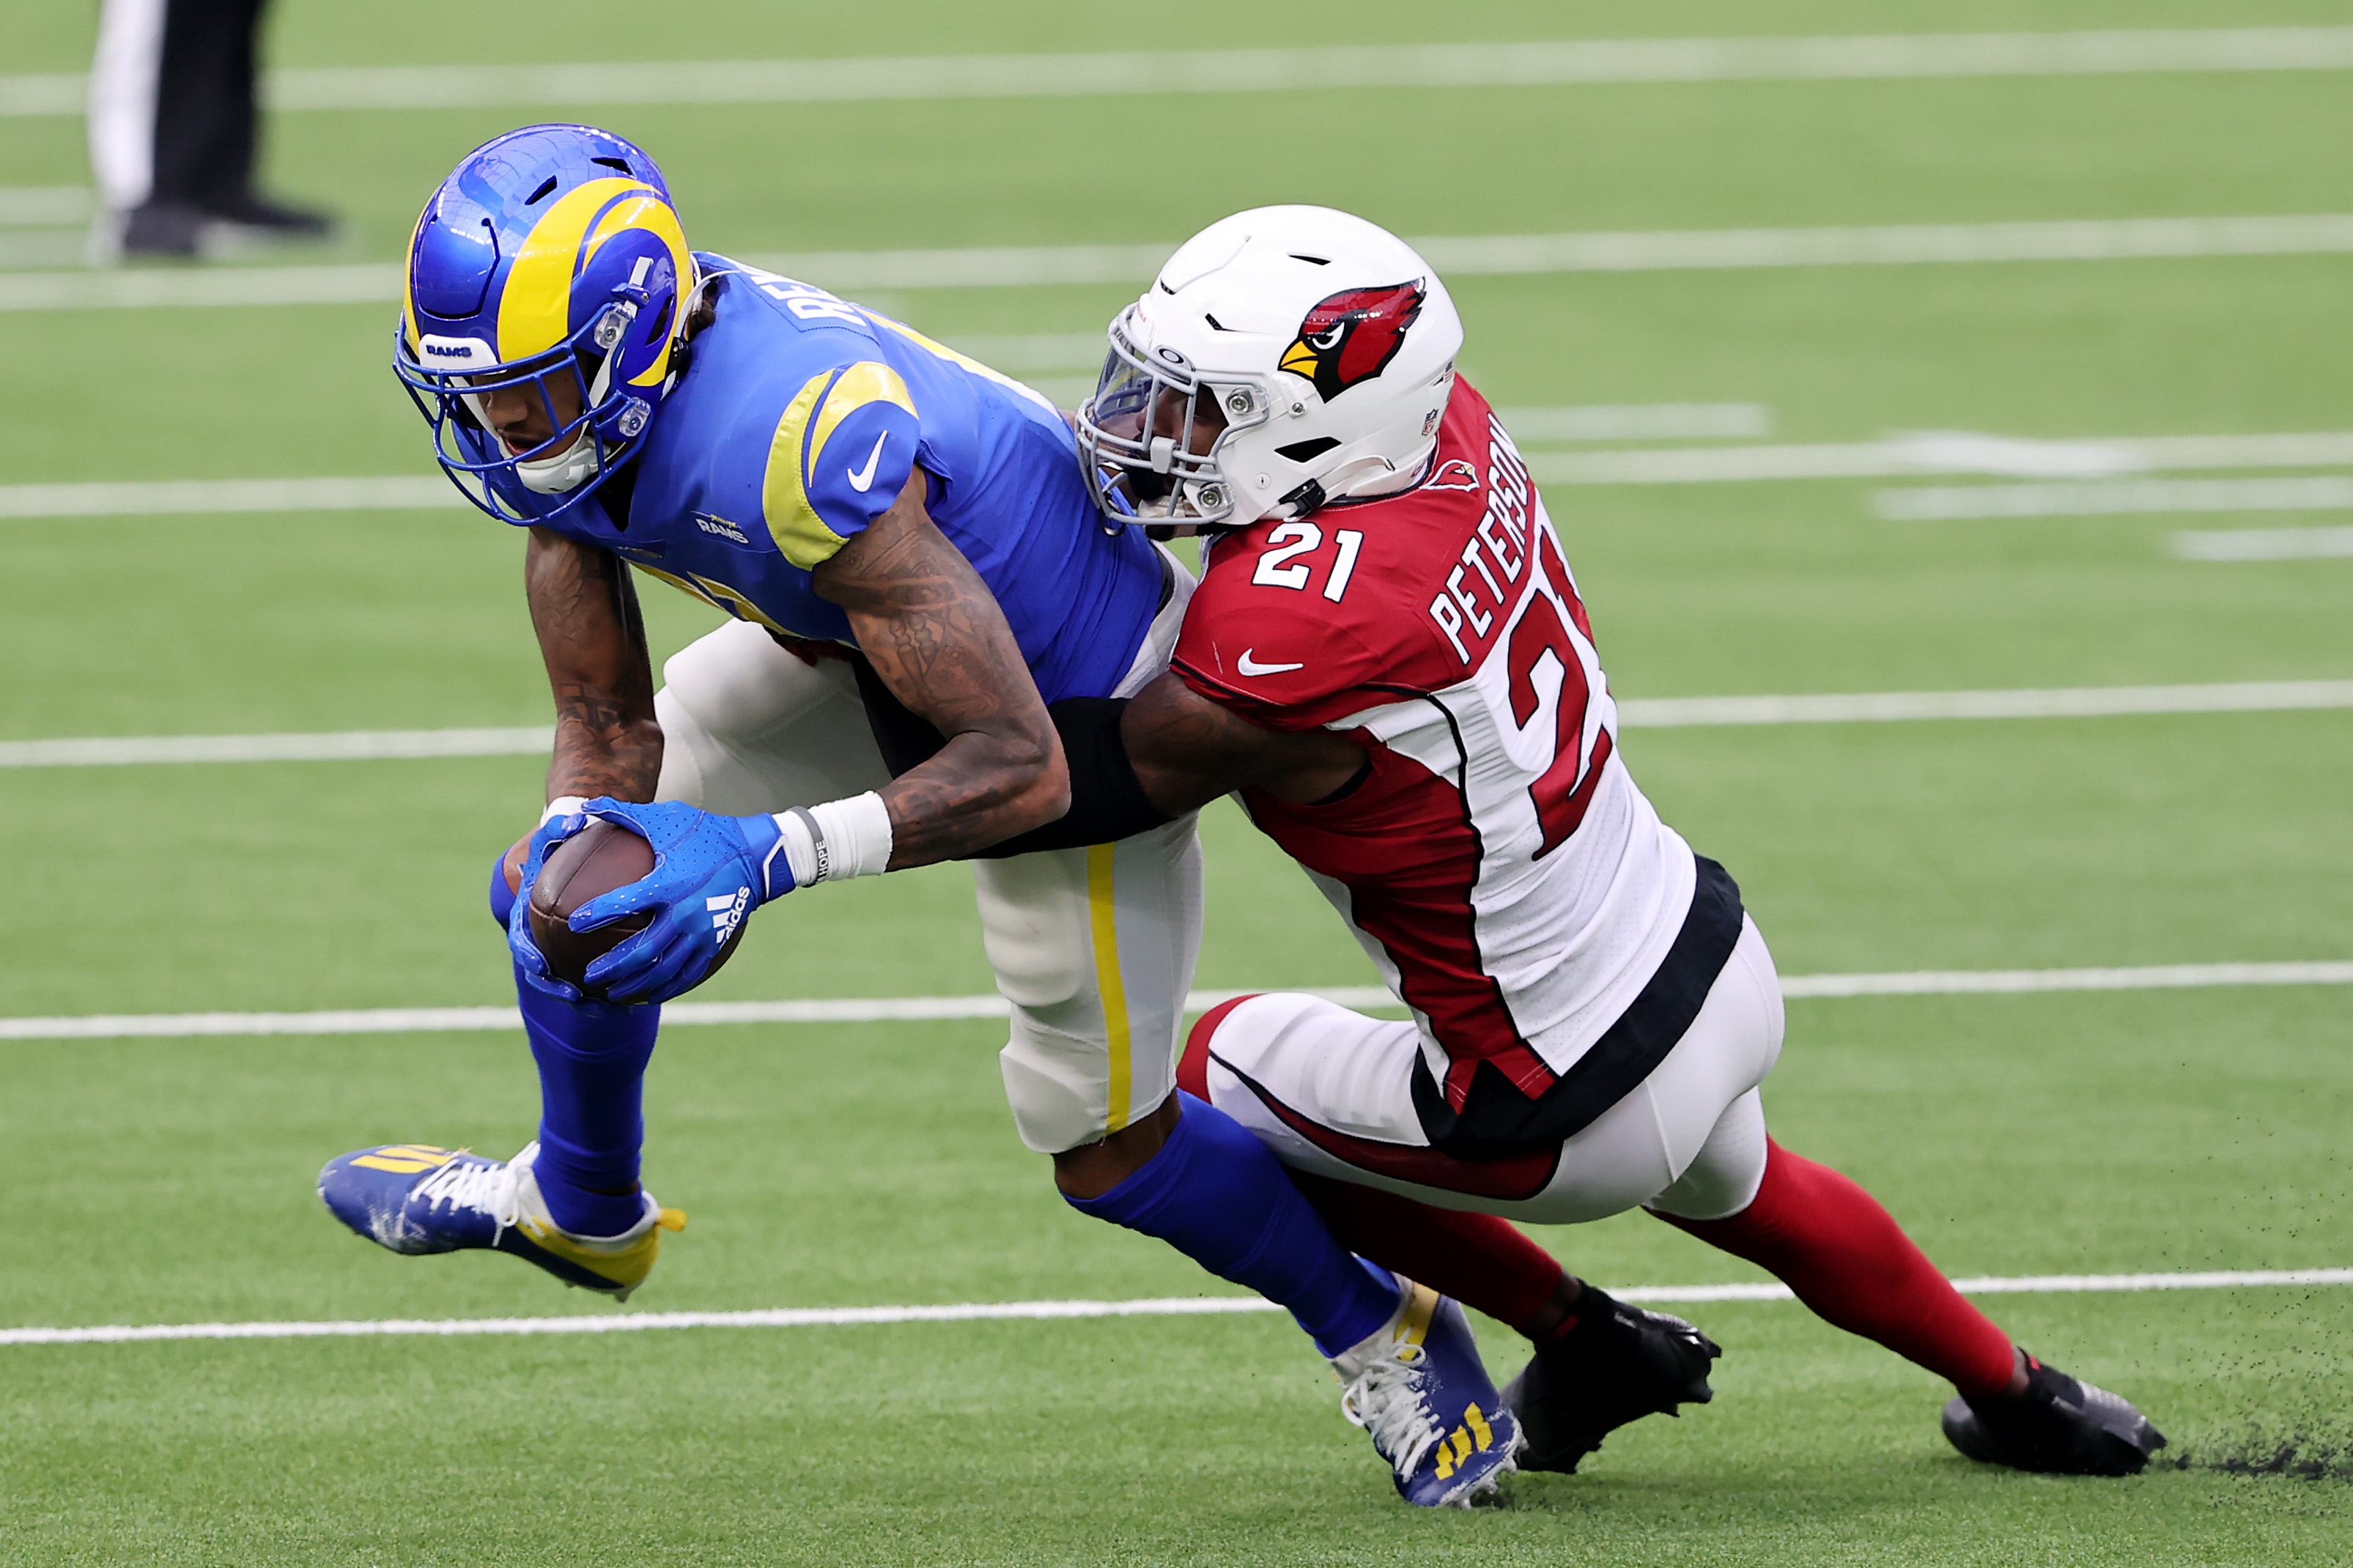 Patrick Peterson may have played his last game as a member of the Arizona Cardinals.